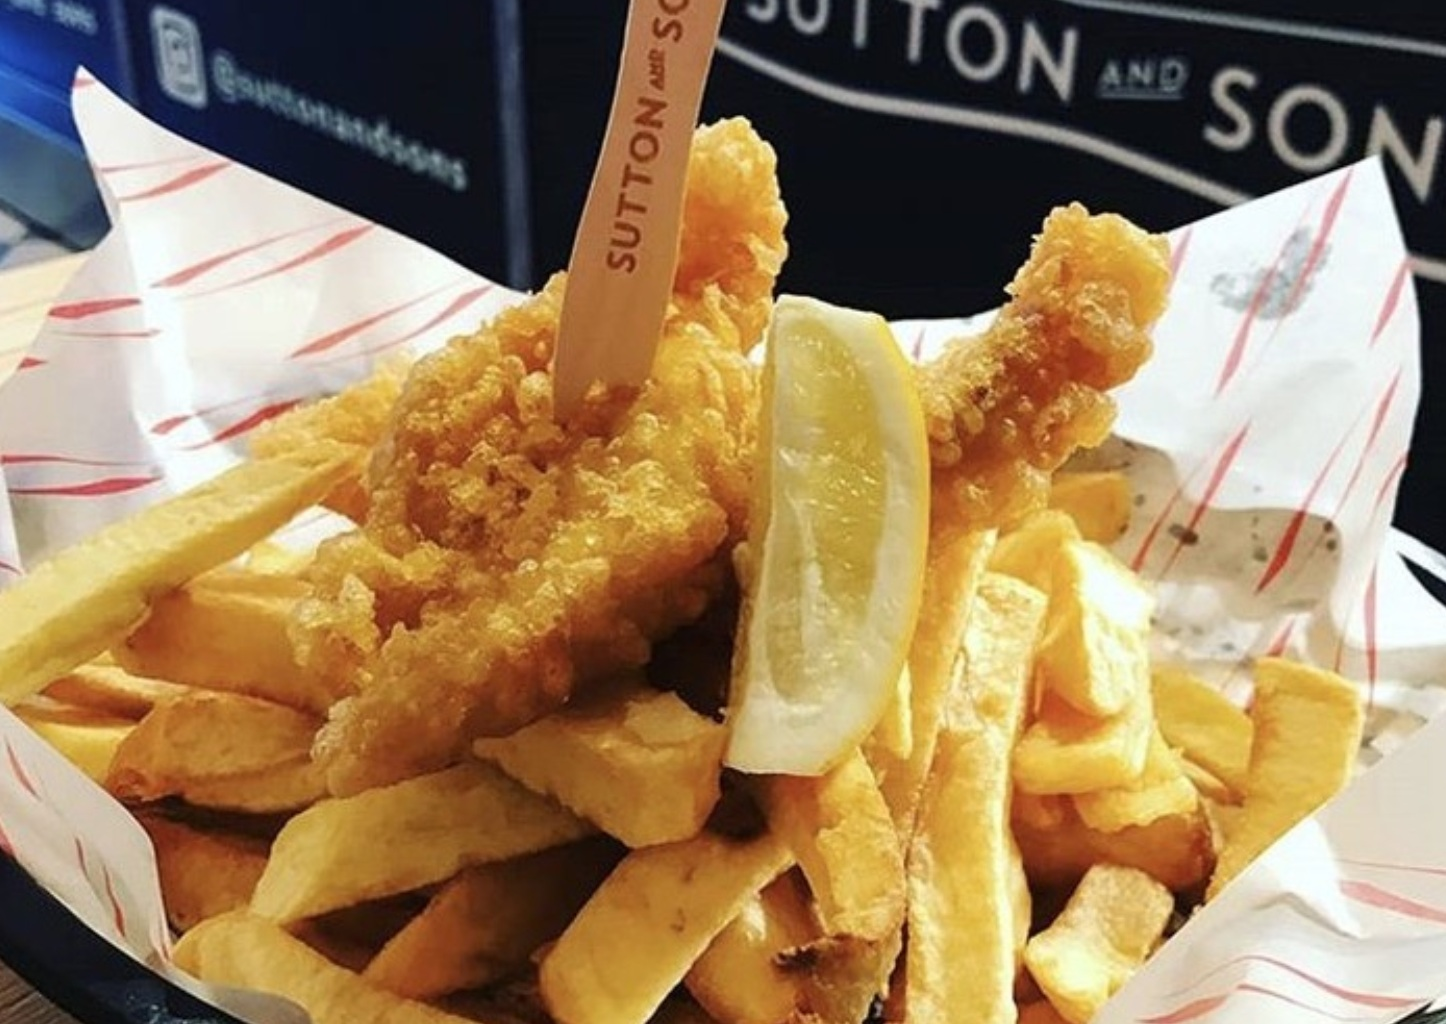 Vegan fish and chips from Sutton & Sons